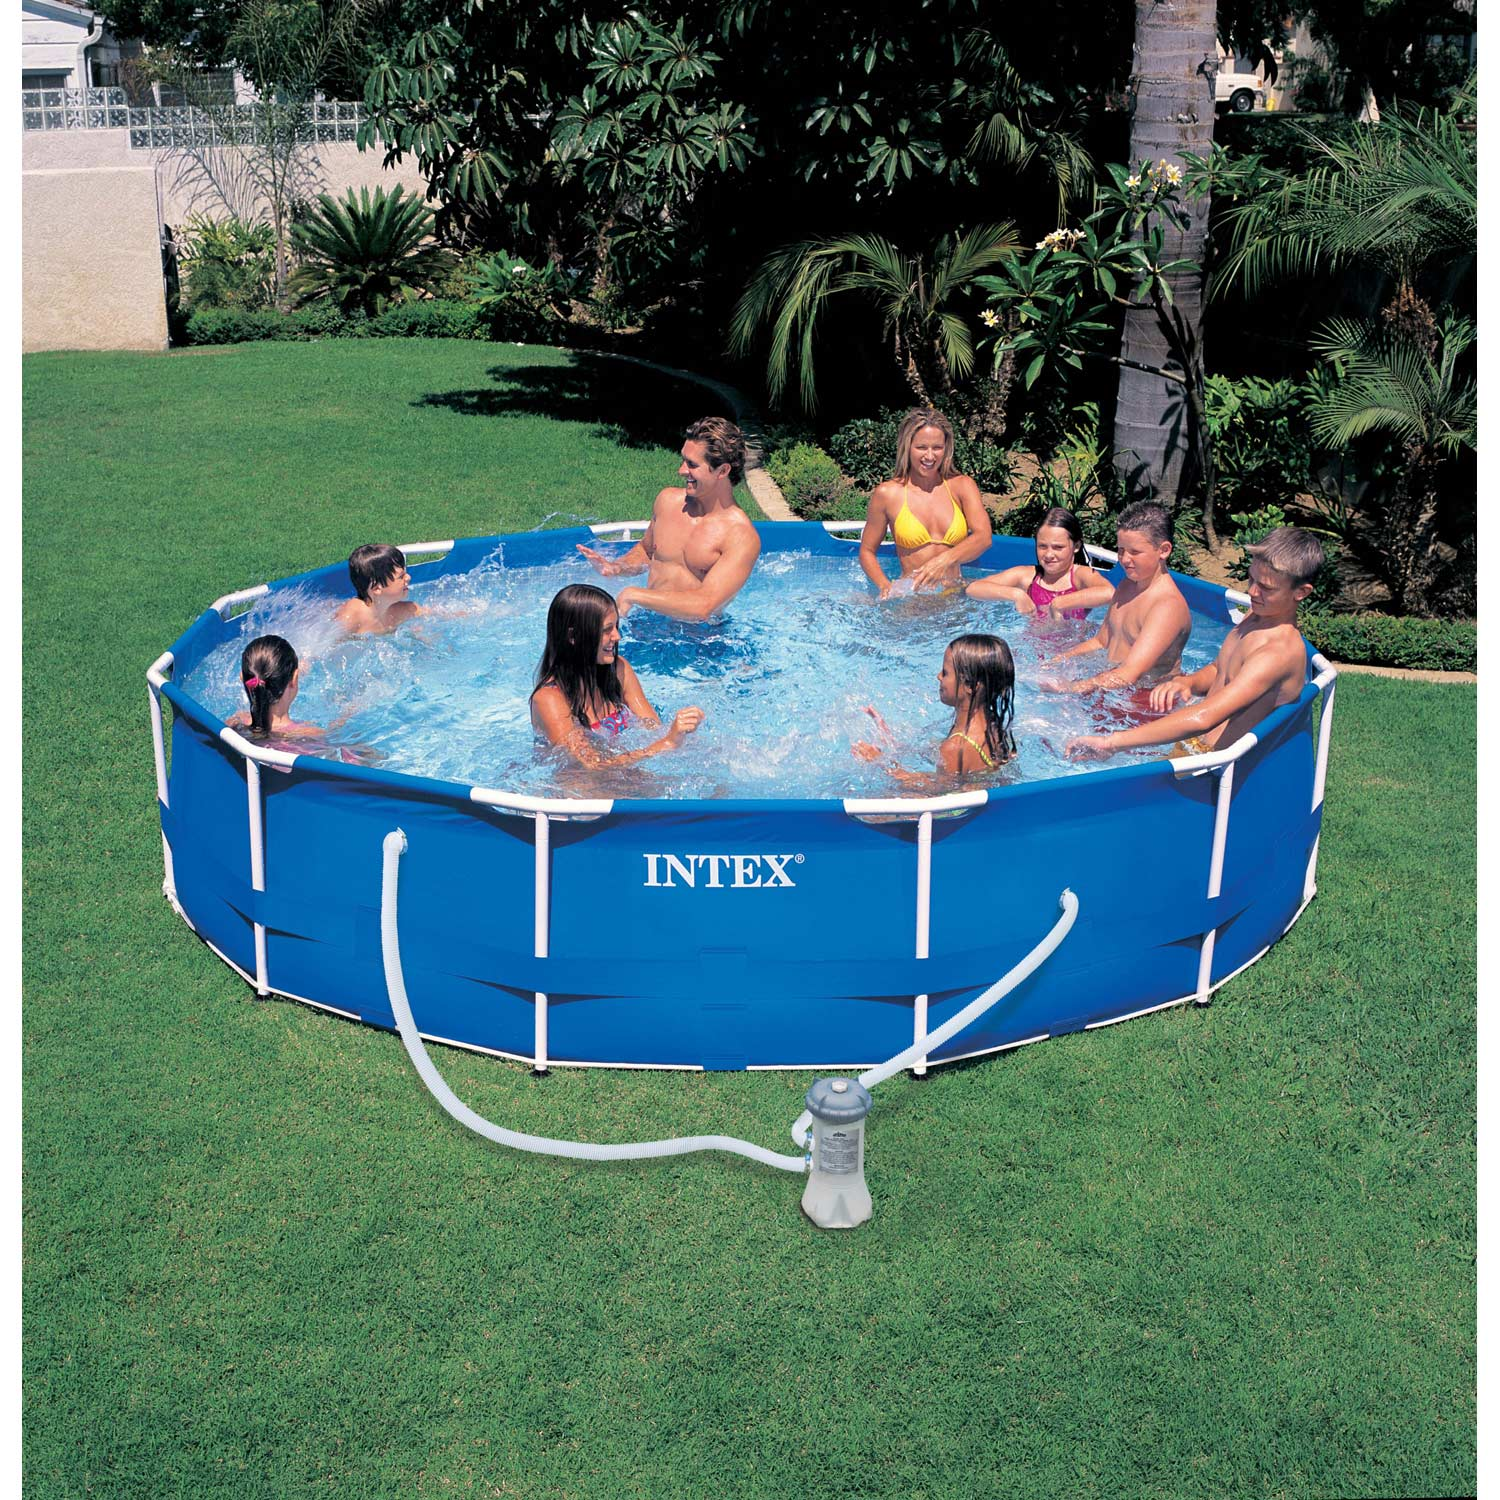 Piscine hors sol autoportante tubulaire metal frame intex for Piscine hors sol lyon